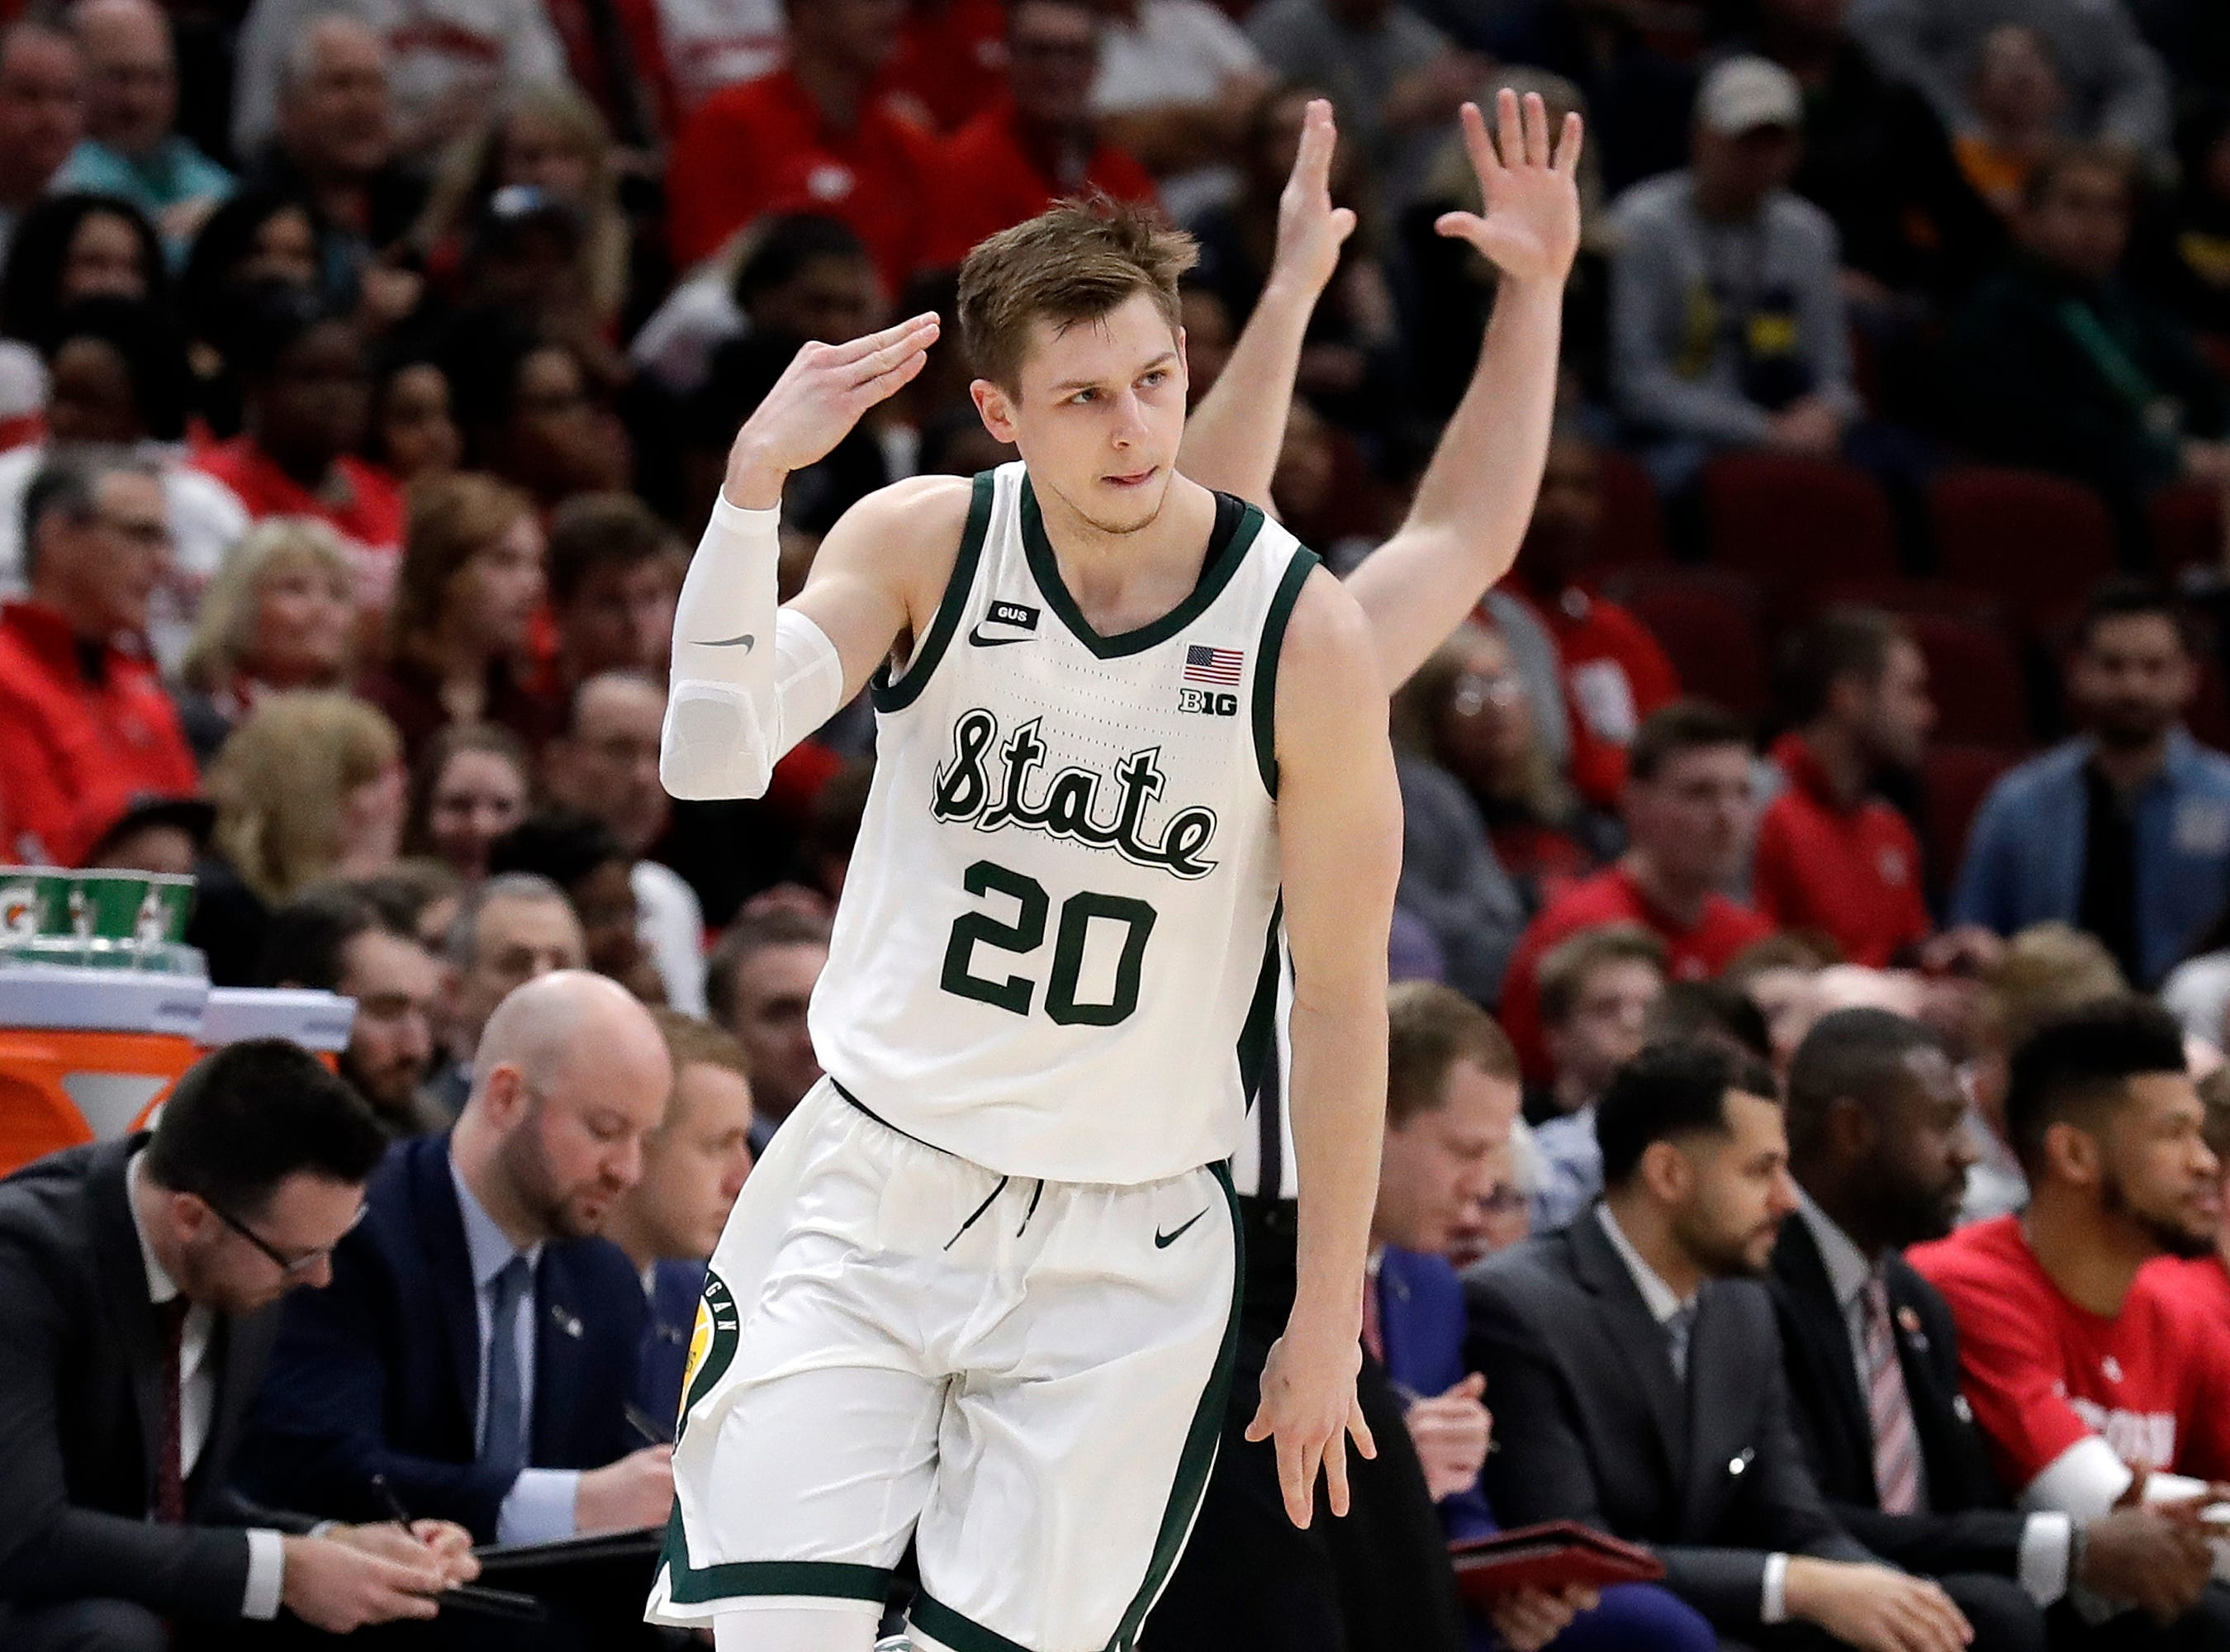 Michigan State's Matt McQuaid (20) reacts after shooting a 3-point basket during the first half of an NCAA college basketball game against Wisconsin in the semifinals of the Big Ten Conference tournament, Saturday, March 16, 2019, in Chicago.